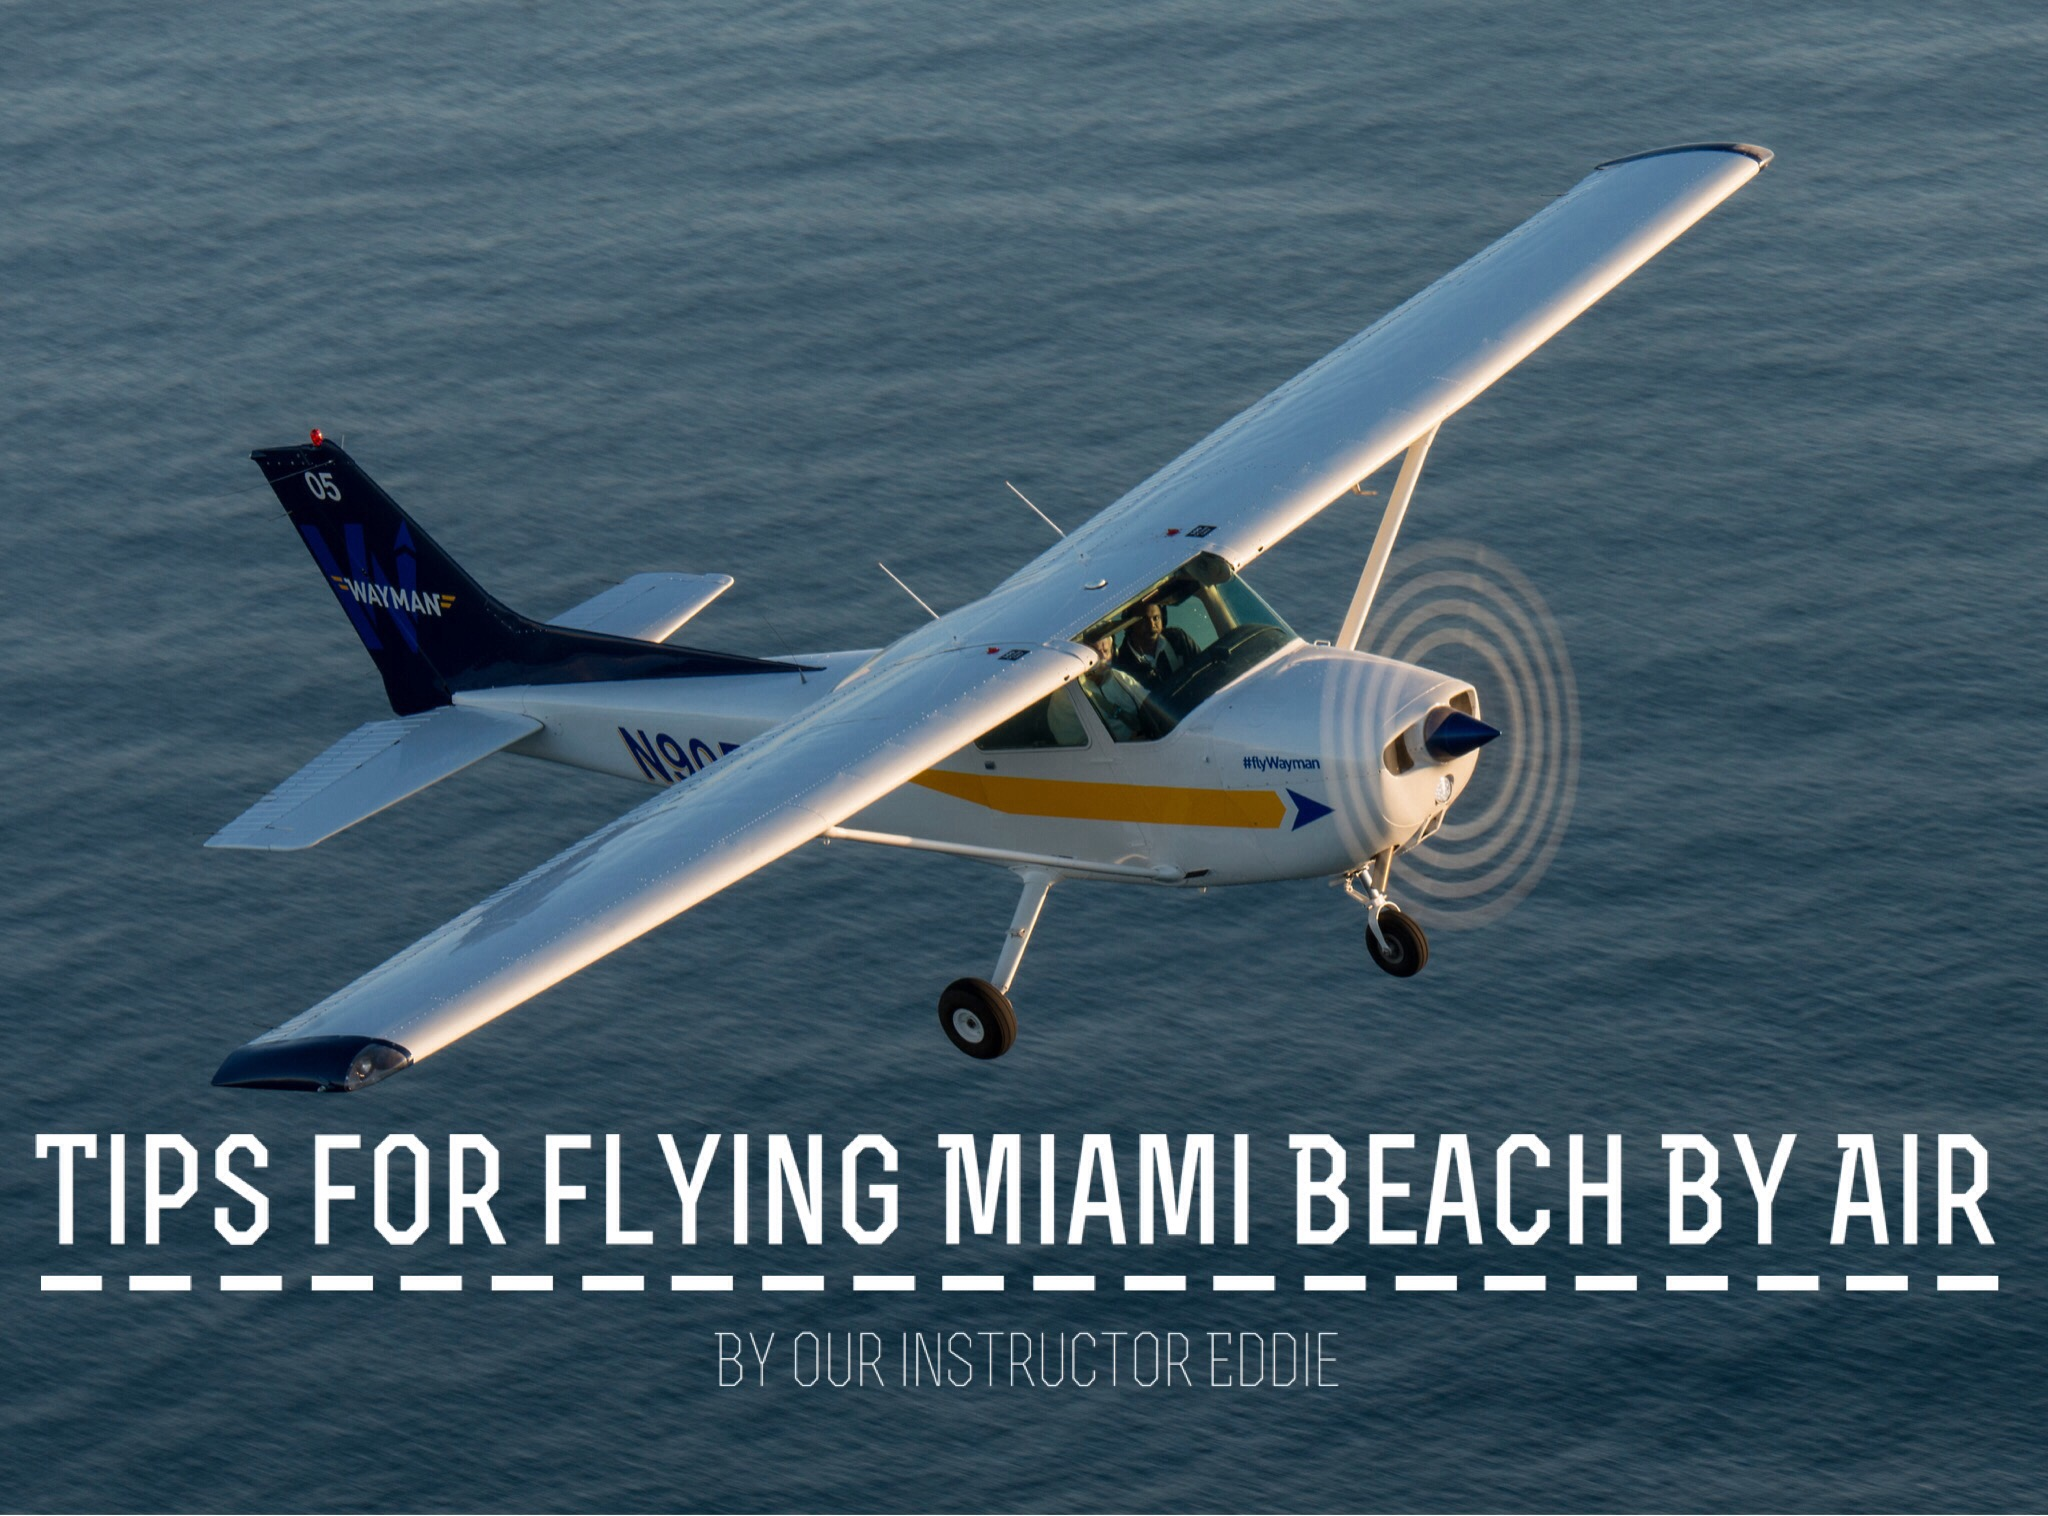 Tips for Flying Miami beach by air